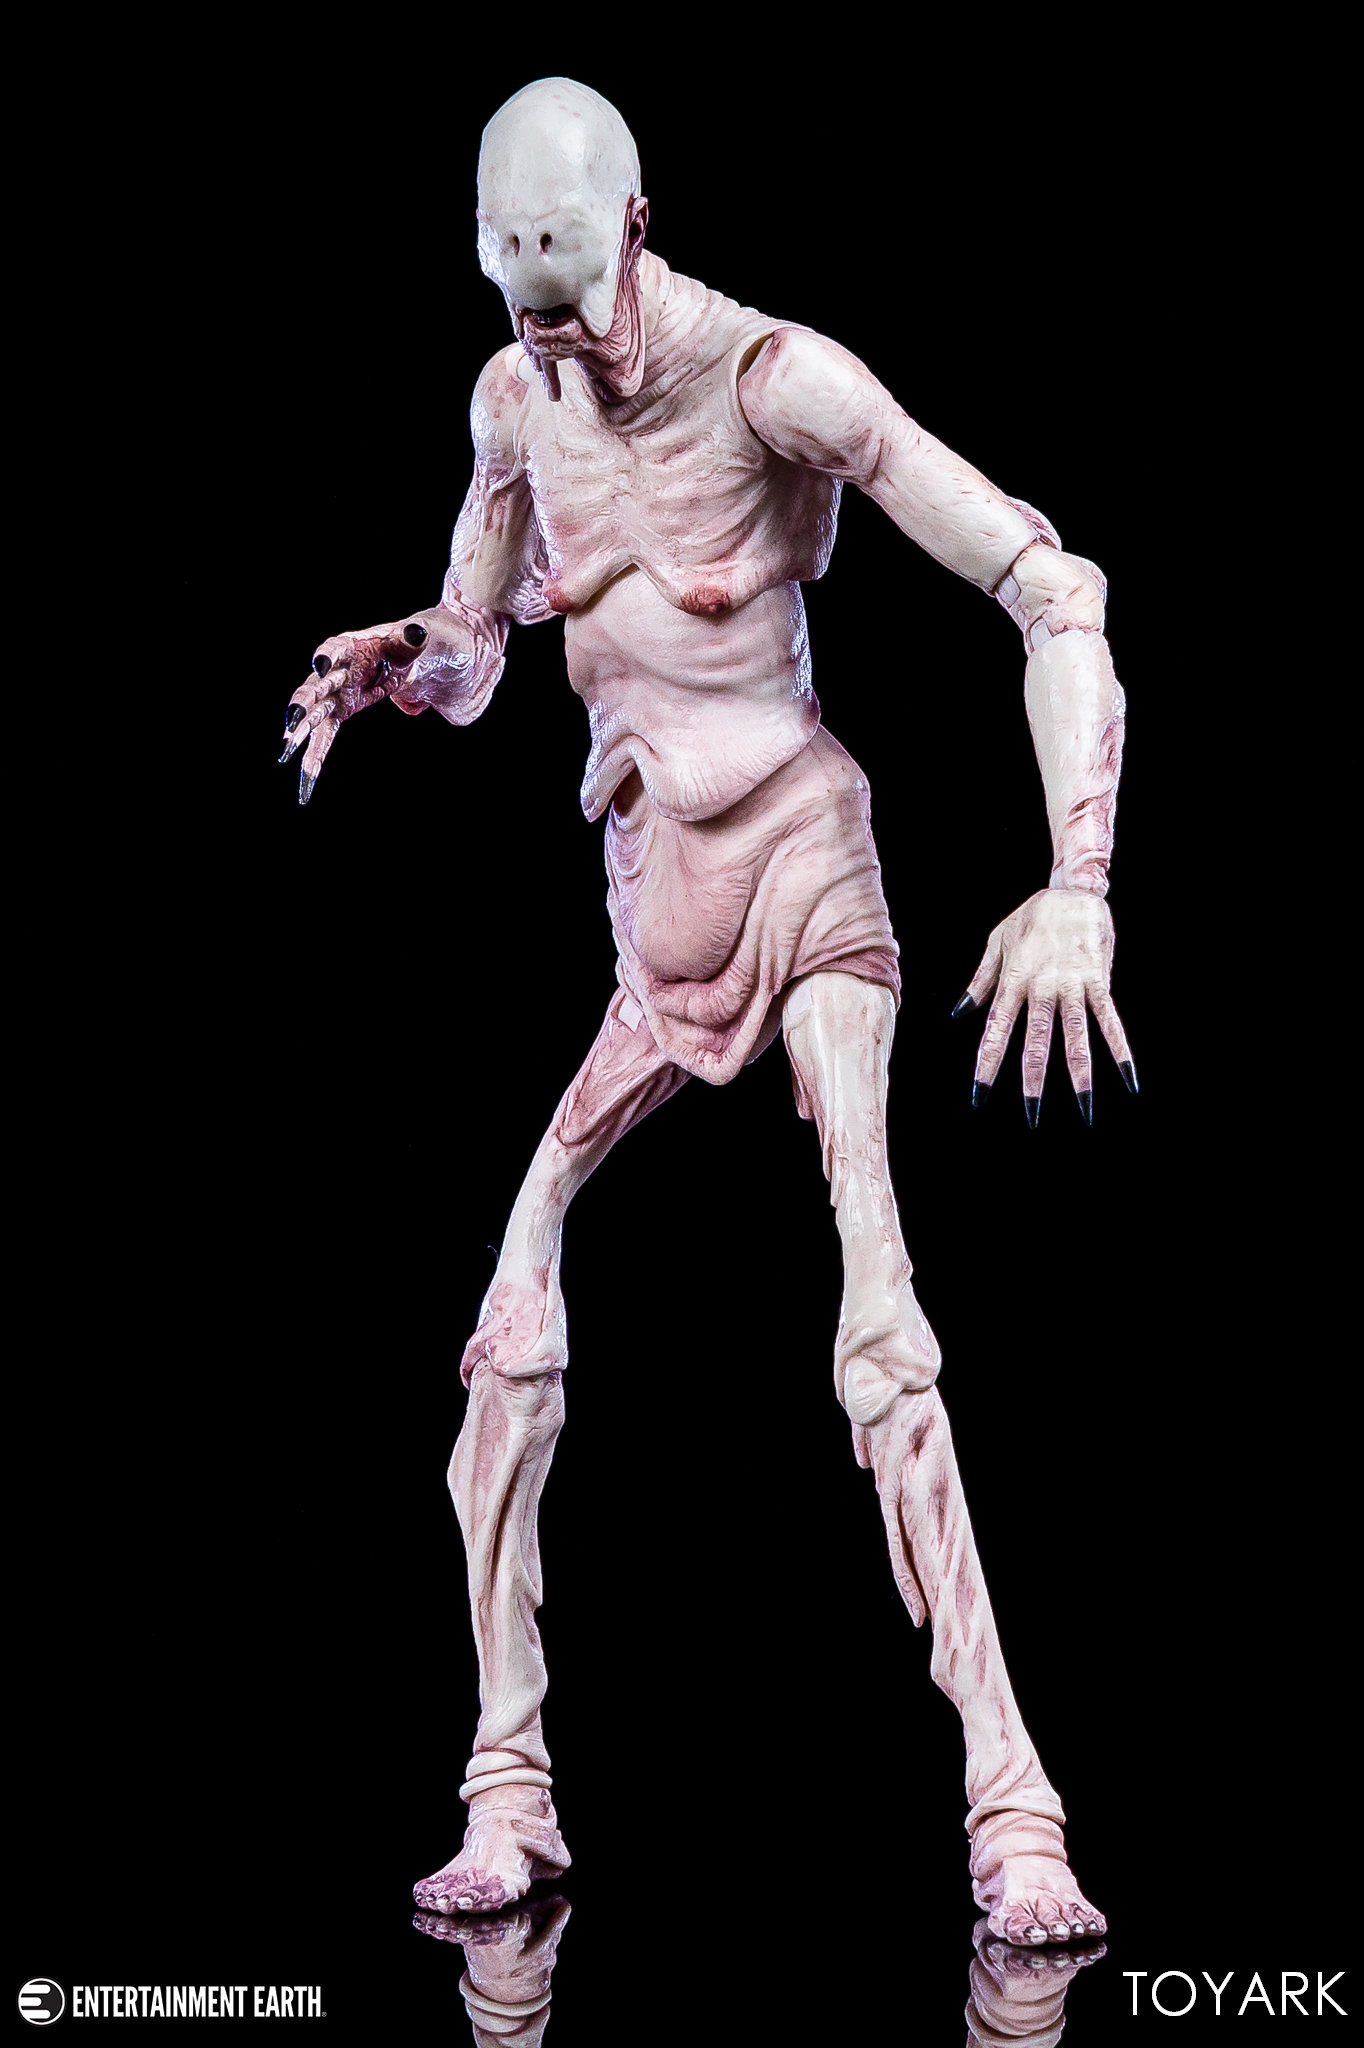 https://news.toyark.com/wp-content/uploads/sites/4/2019/03/Pale-Man-NECA-018.jpg